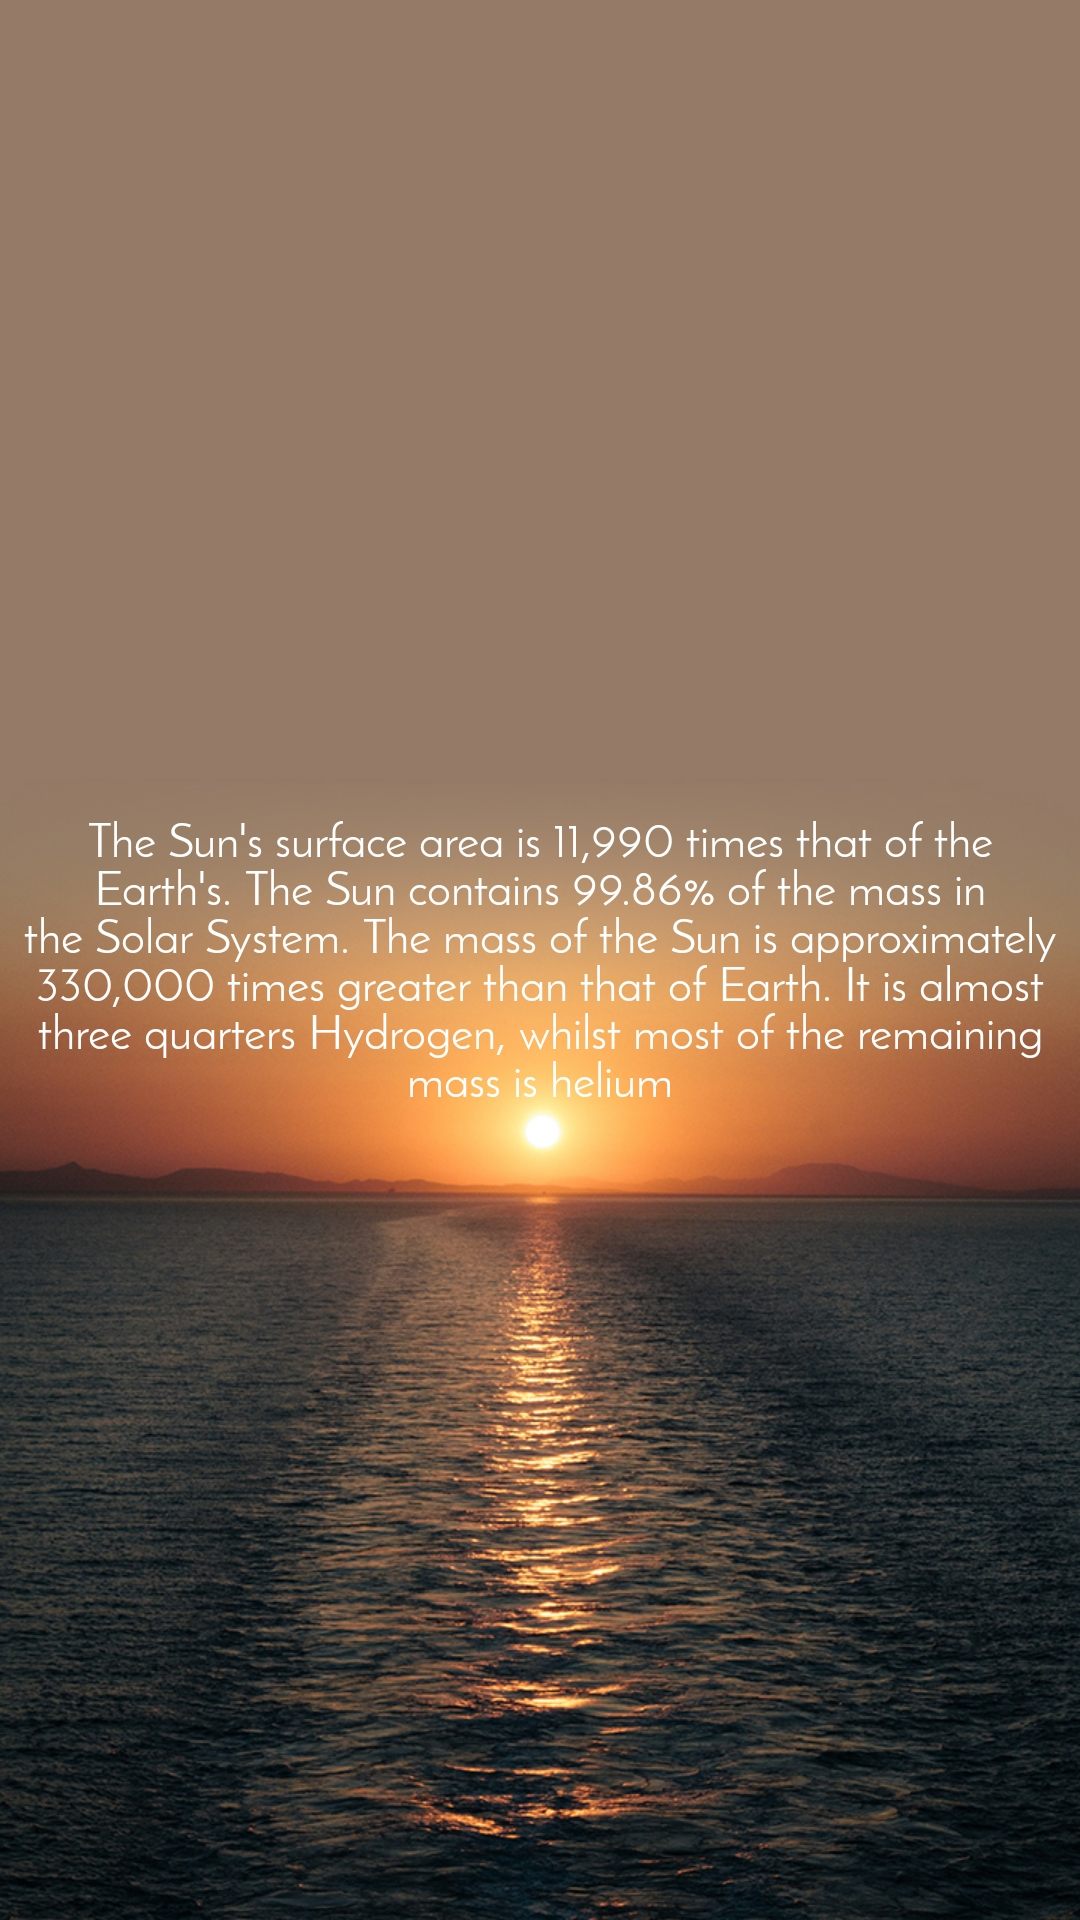 TheSun'ssurface area is 11,990 times that of the Earth's. TheSuncontains 99.86% of the mass in theSolarSystem. The mass of theSunis approximately 330,000 times greater than that of Earth. It is almost three quarters Hydrogen, whilst most of the remaining mass is helium